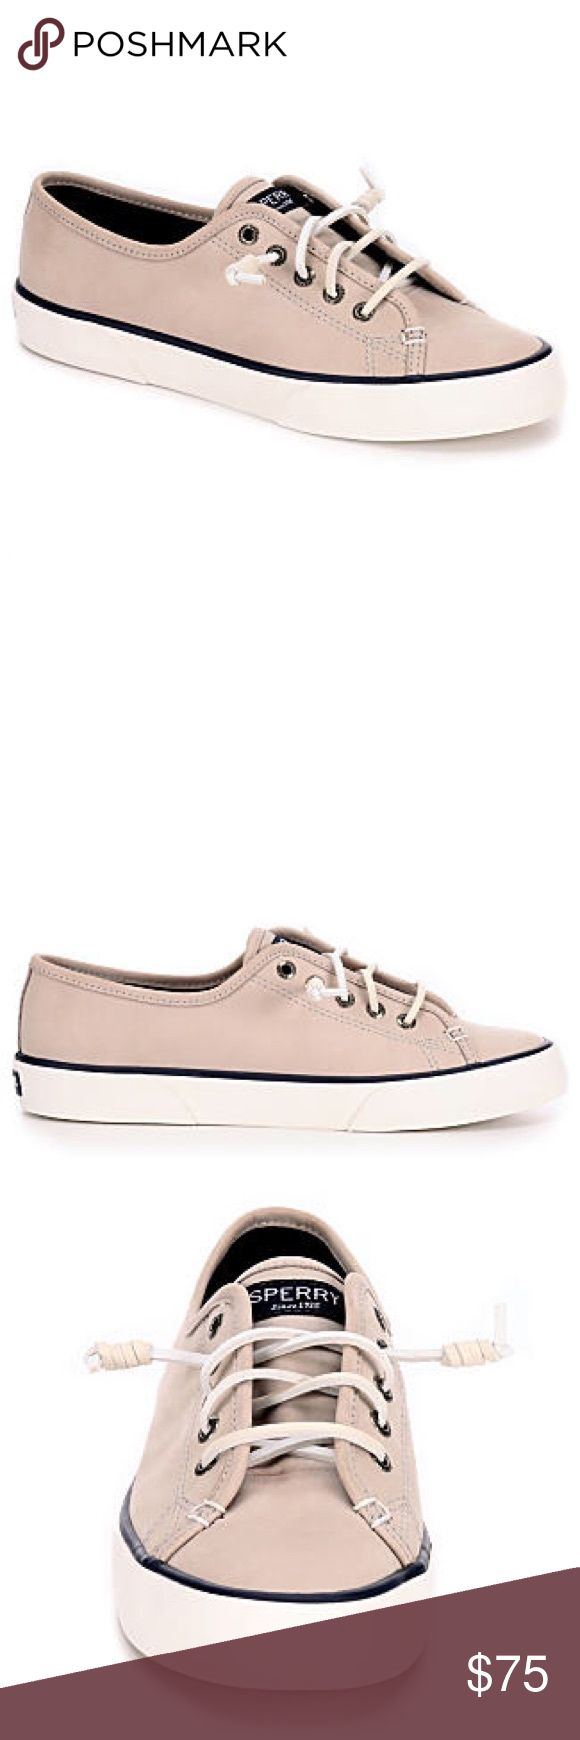 ☀️NWT☀️ Authentic Sperry Summer Sneaker ☀️ Brand new!! ☀️⛵️ A great classic summer look in these women's shoe by Sperry. Luxurious materials keeps it completely comfy, and the classic silhouette is always on trend. Looks perfect with summer dresses and casual styles too!!! 😎 (no trades) Sperry Shoes